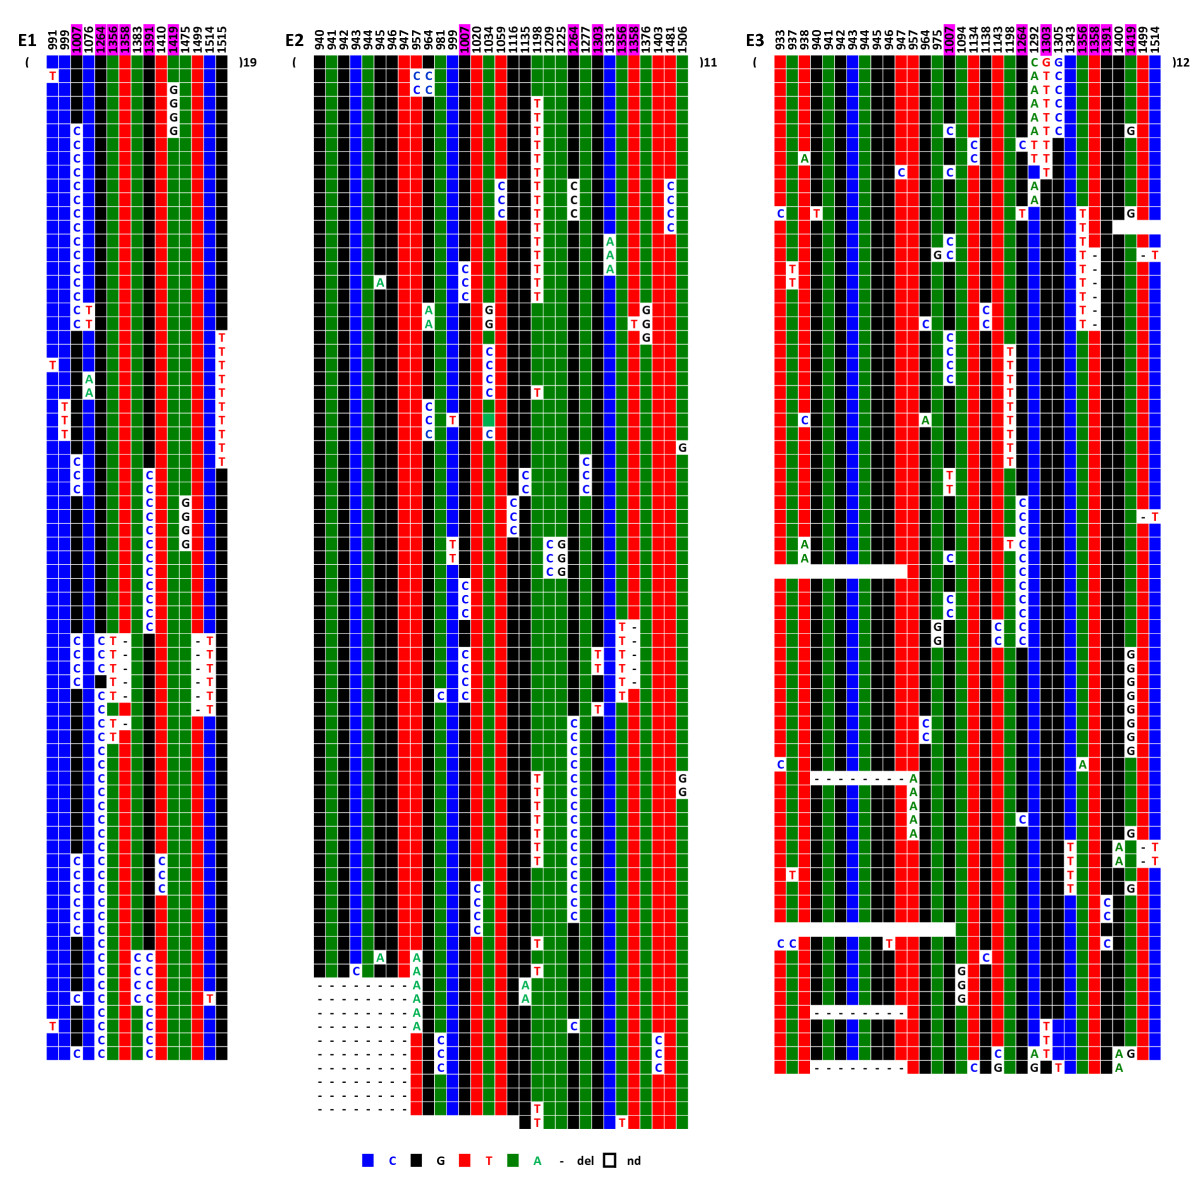 http://static-content.springer.com/image/art%3A10.1186%2F1471-2164-11-195/MediaObjects/12864_2009_Article_2789_Fig3_HTML.jpg